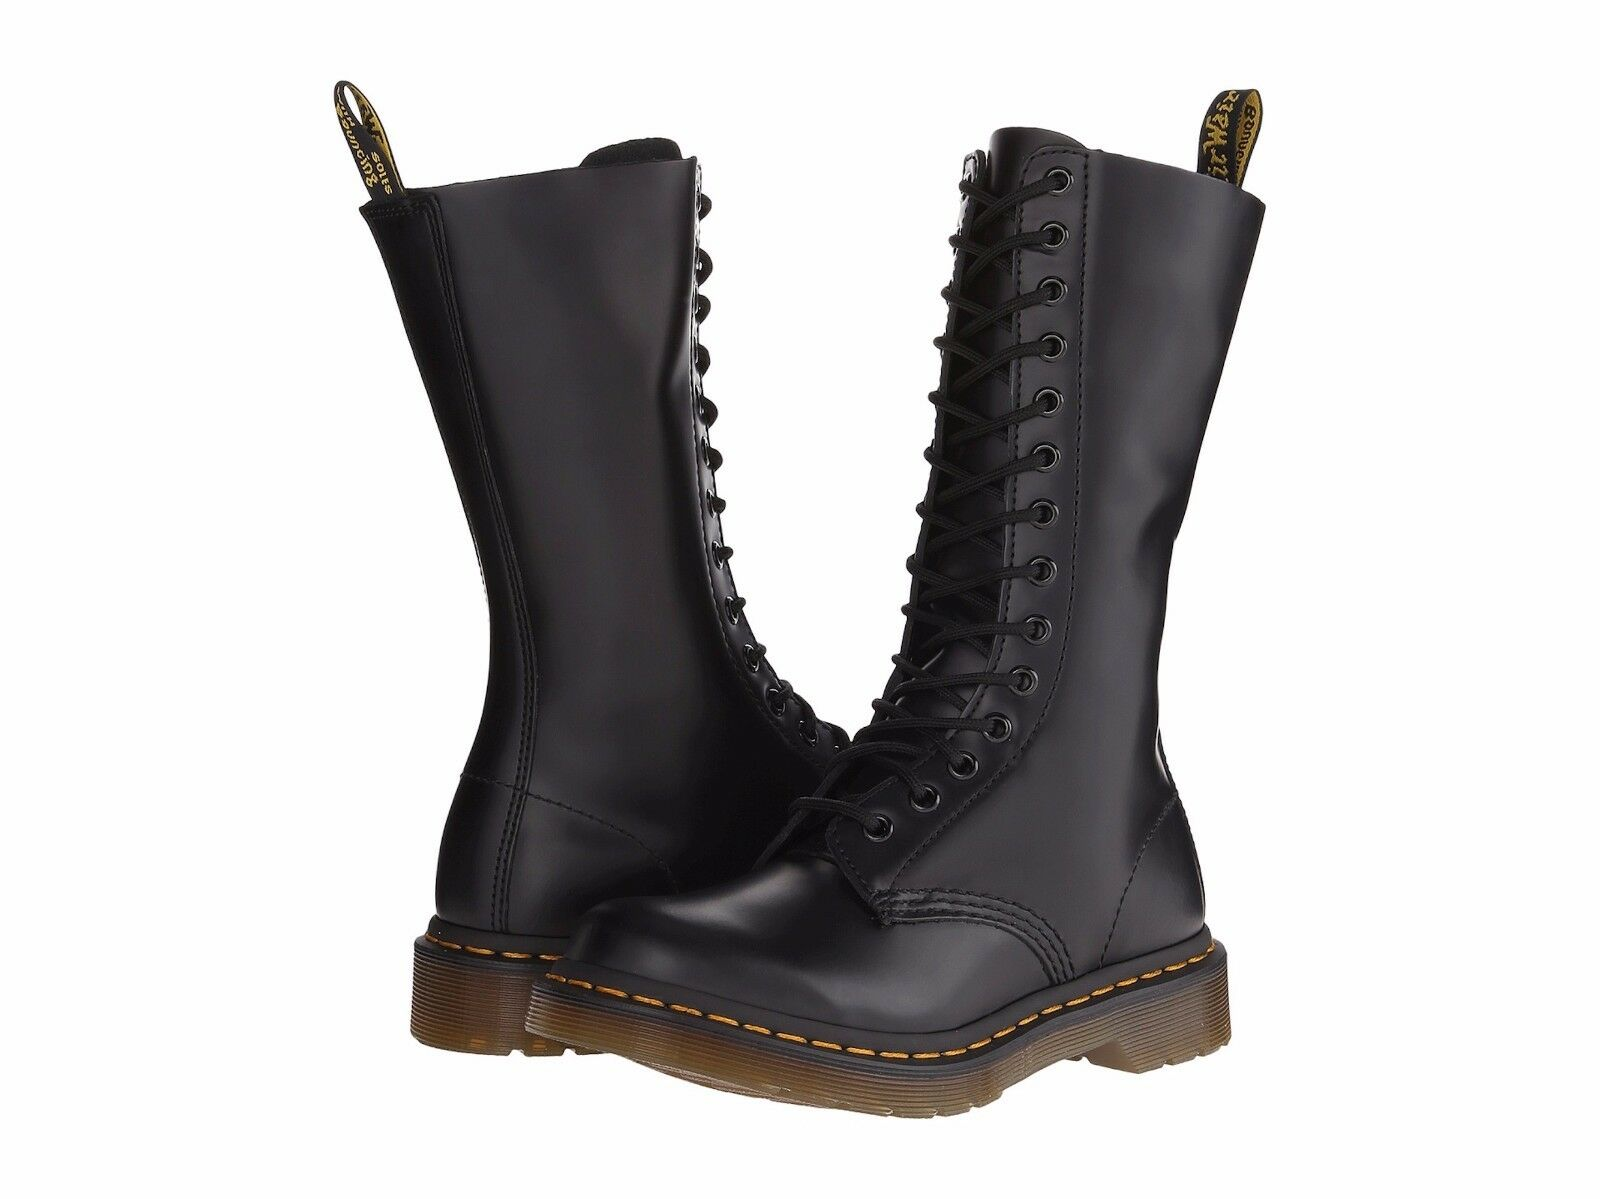 Dr. Martens 1914W Women's Women's Women's Black Smooth Leather Boots 14 Eye Lace-Up NEW Sz 5 & 6 696137